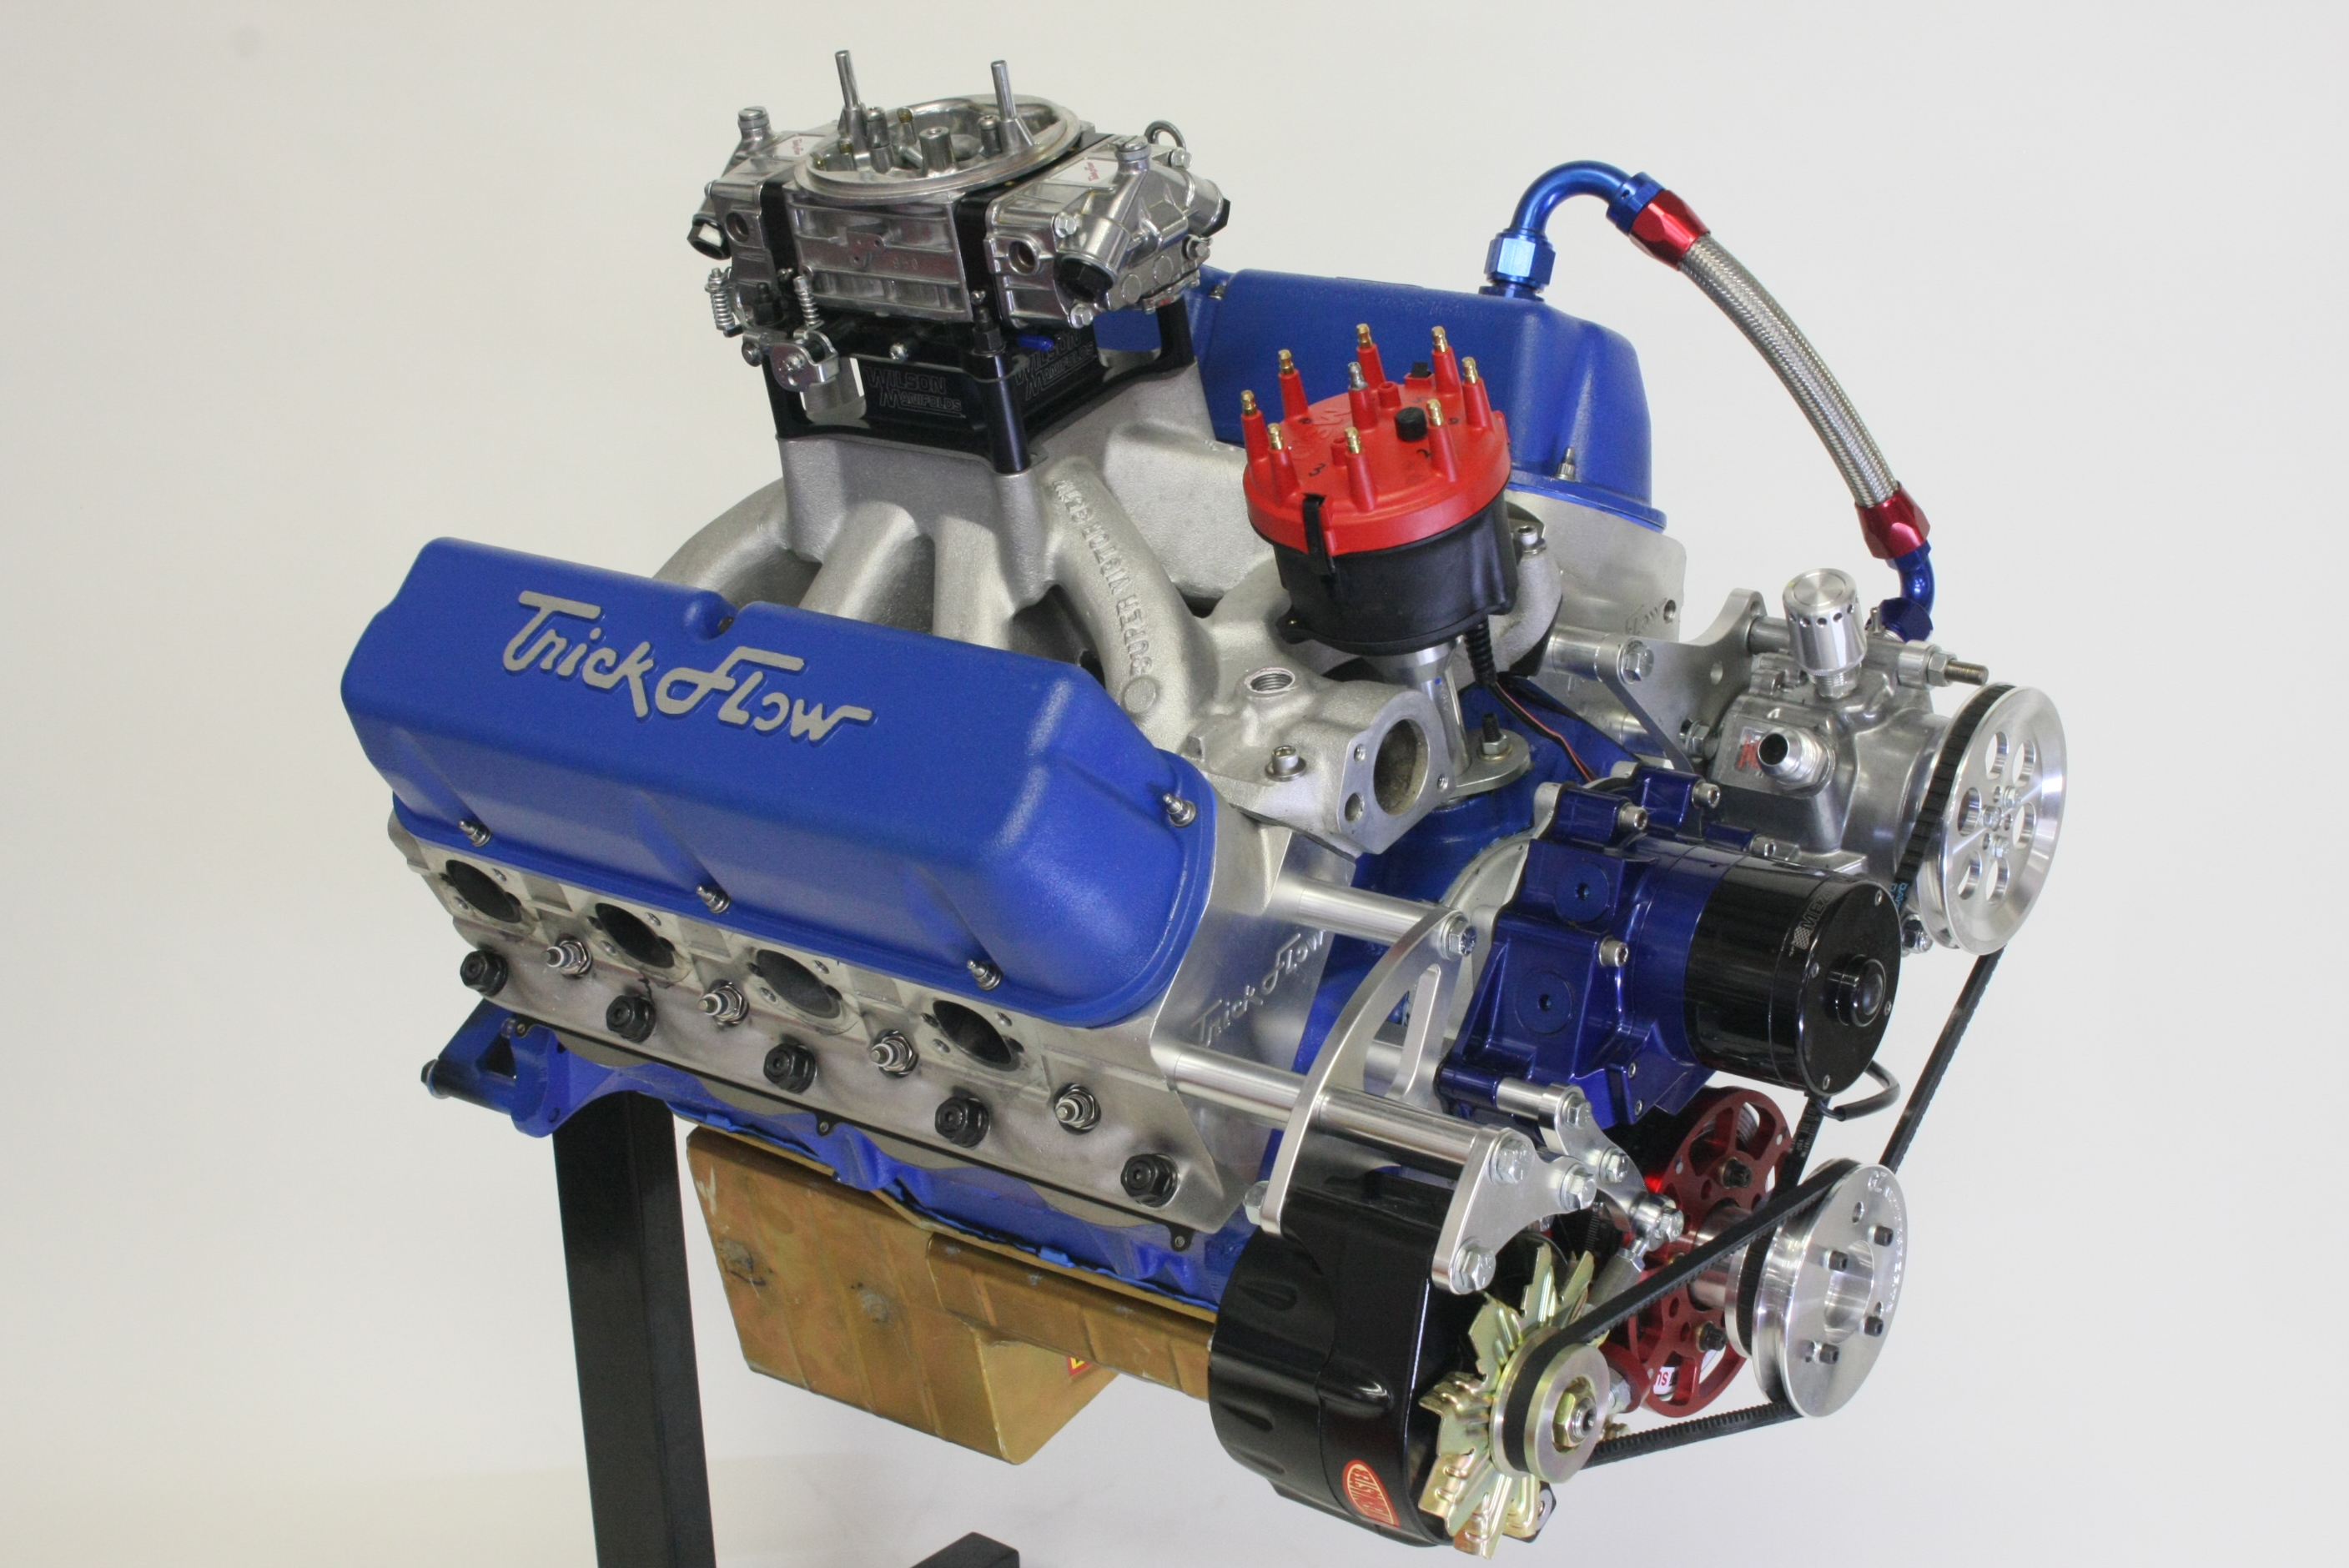 The Wonder Windsor: Hardcore Horsepower's 735 HP Small Block